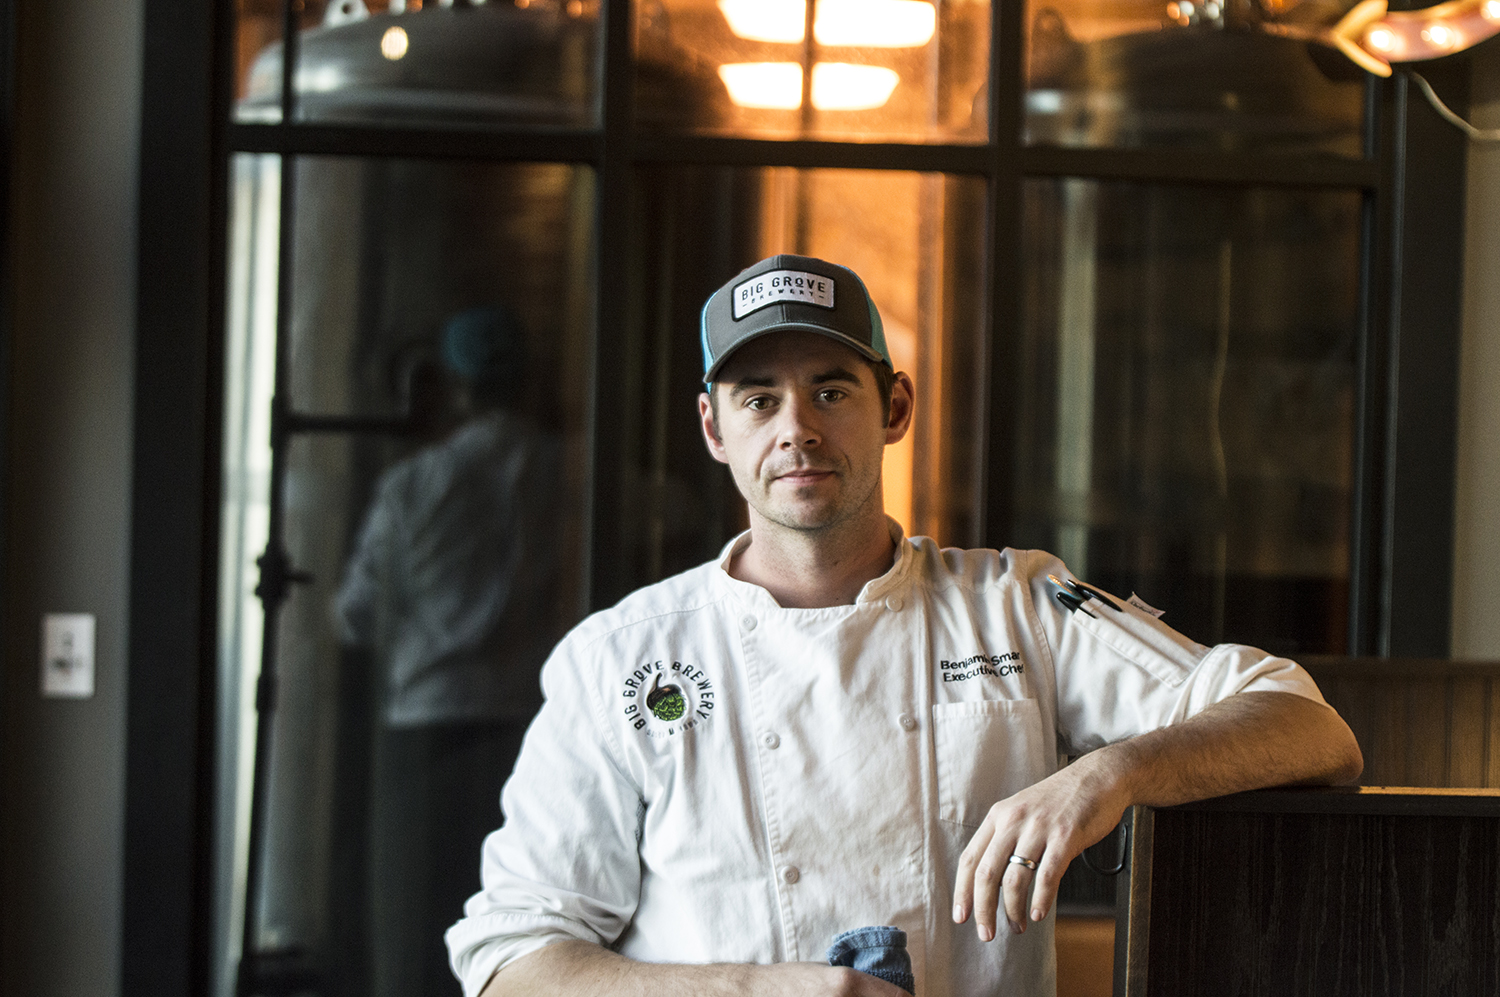 Chef, Ben Smart poses for a photo at Big Grove Brewery in Solon Ia on Wednesday, October 17th, 2018. Smart had just opened up a new menu at the for the public.